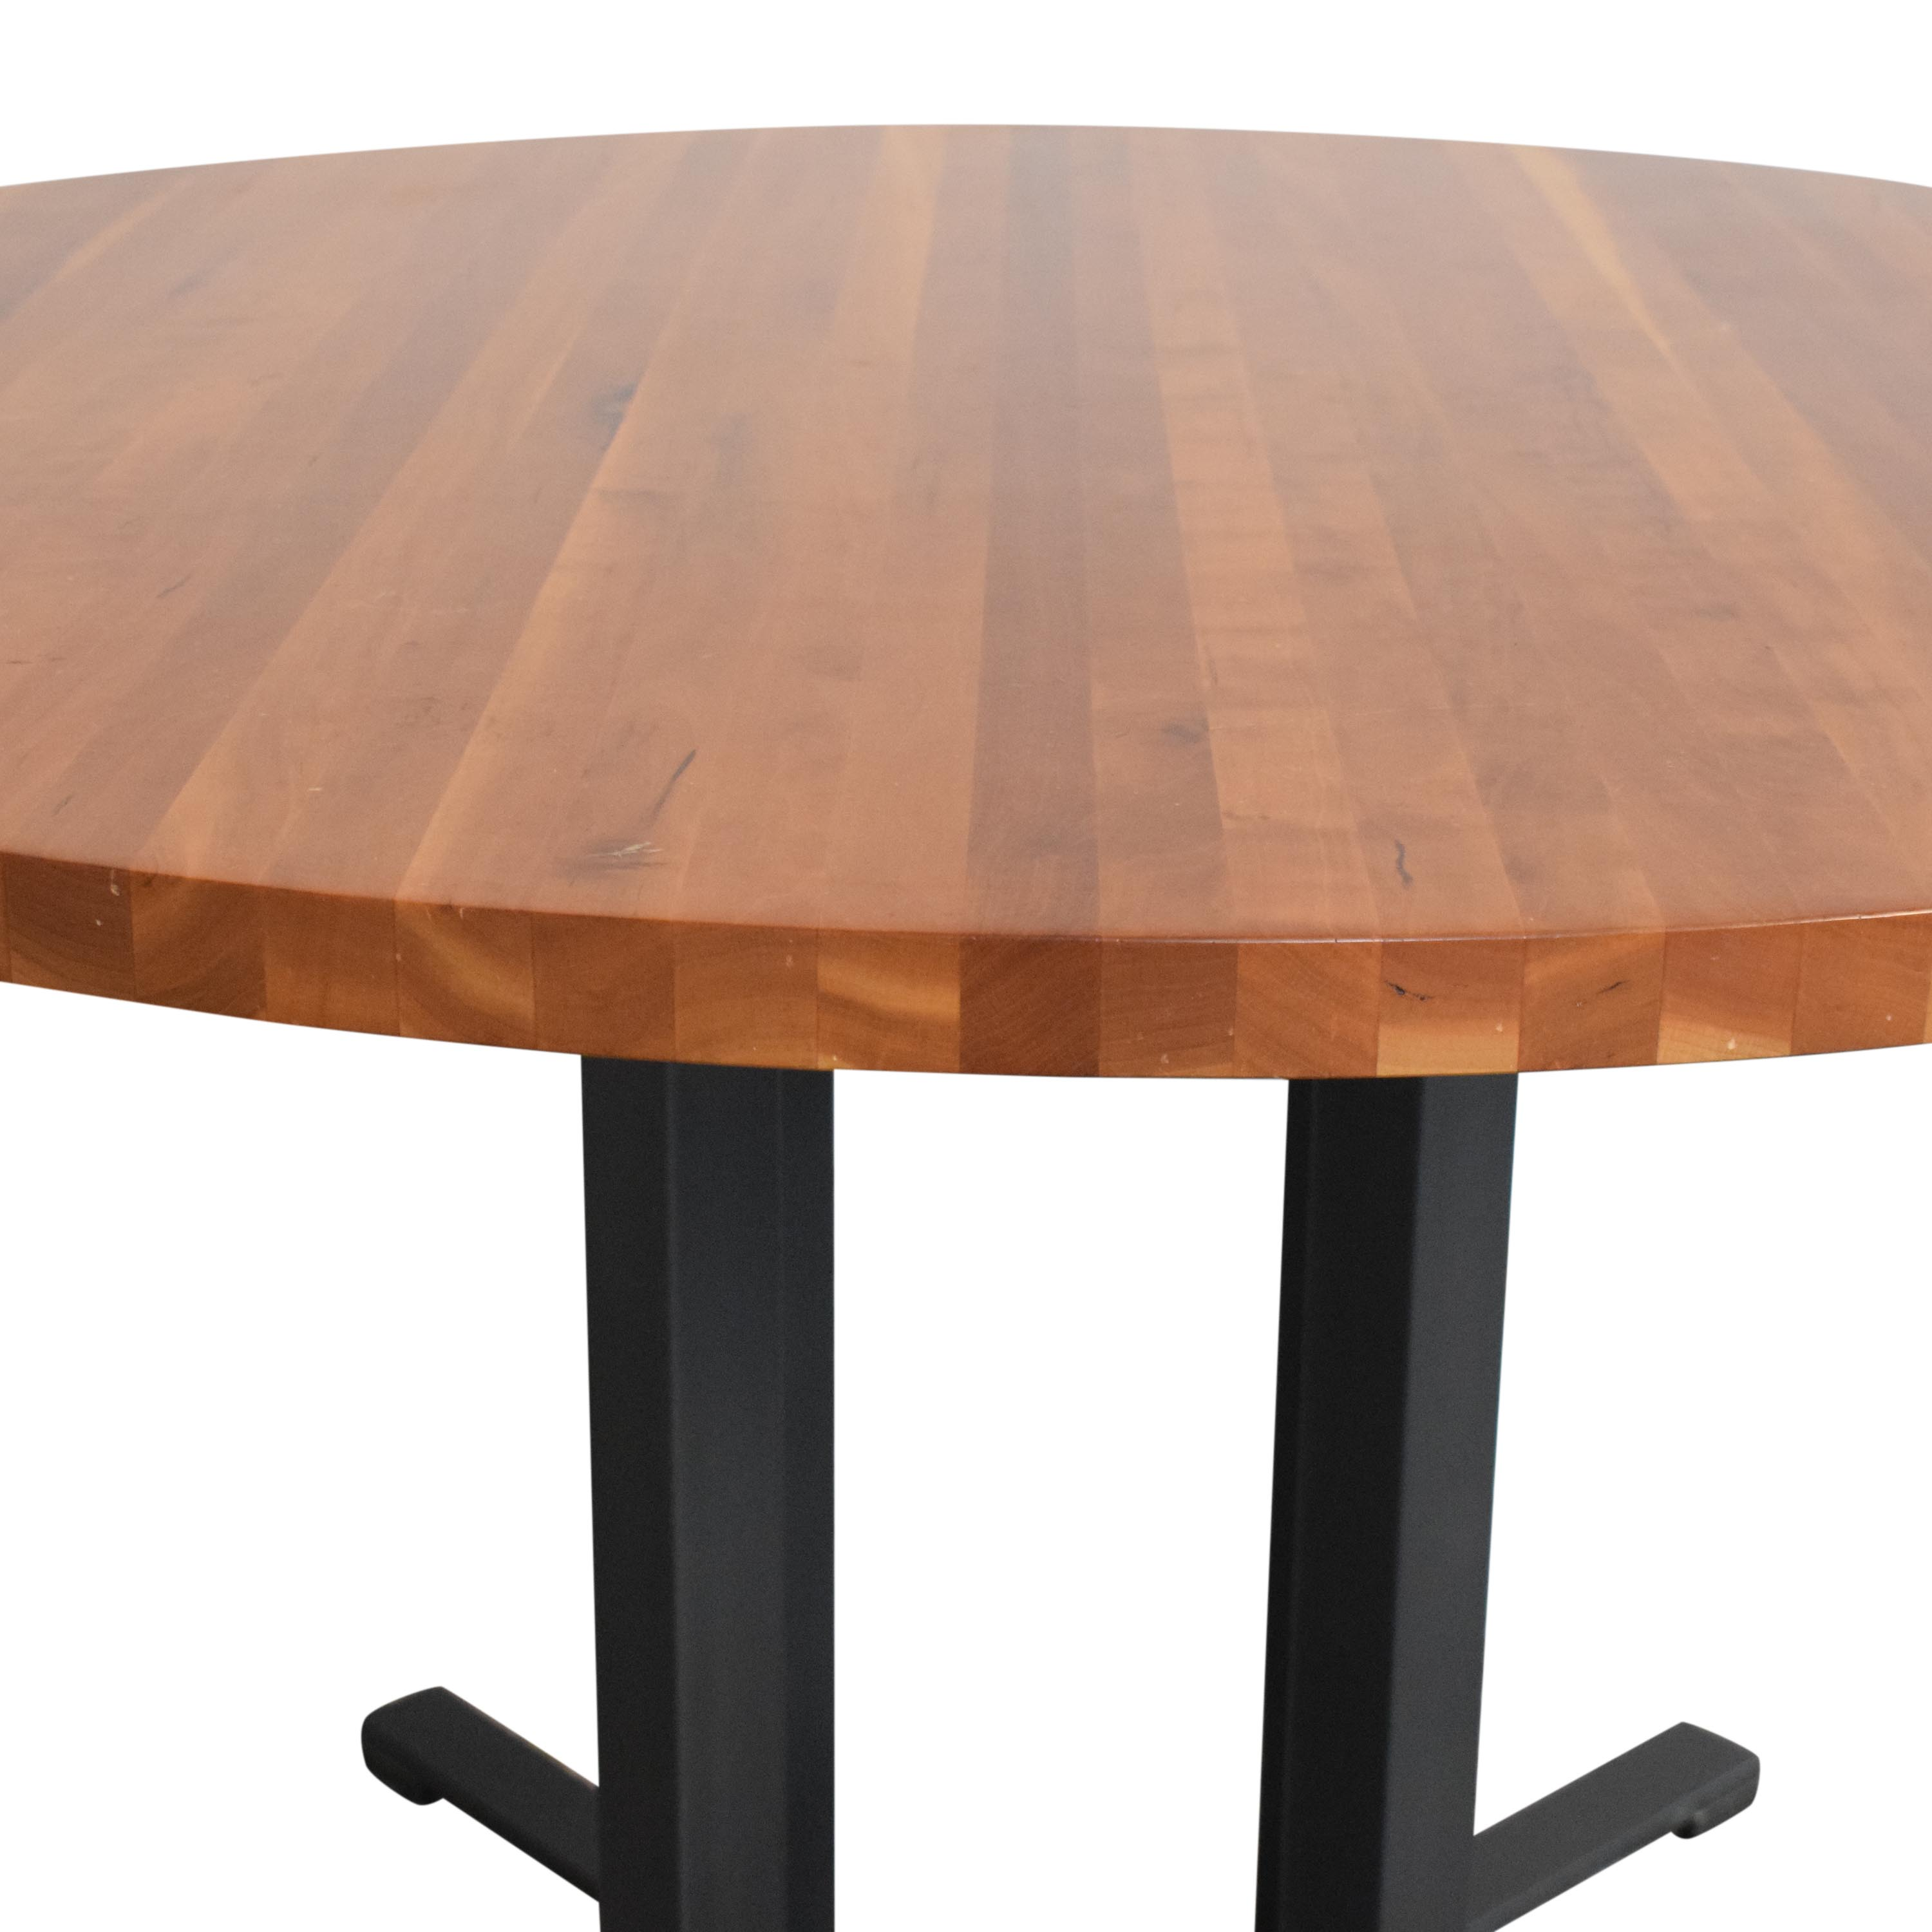 Room & Board Room & Board Round Dining Table used